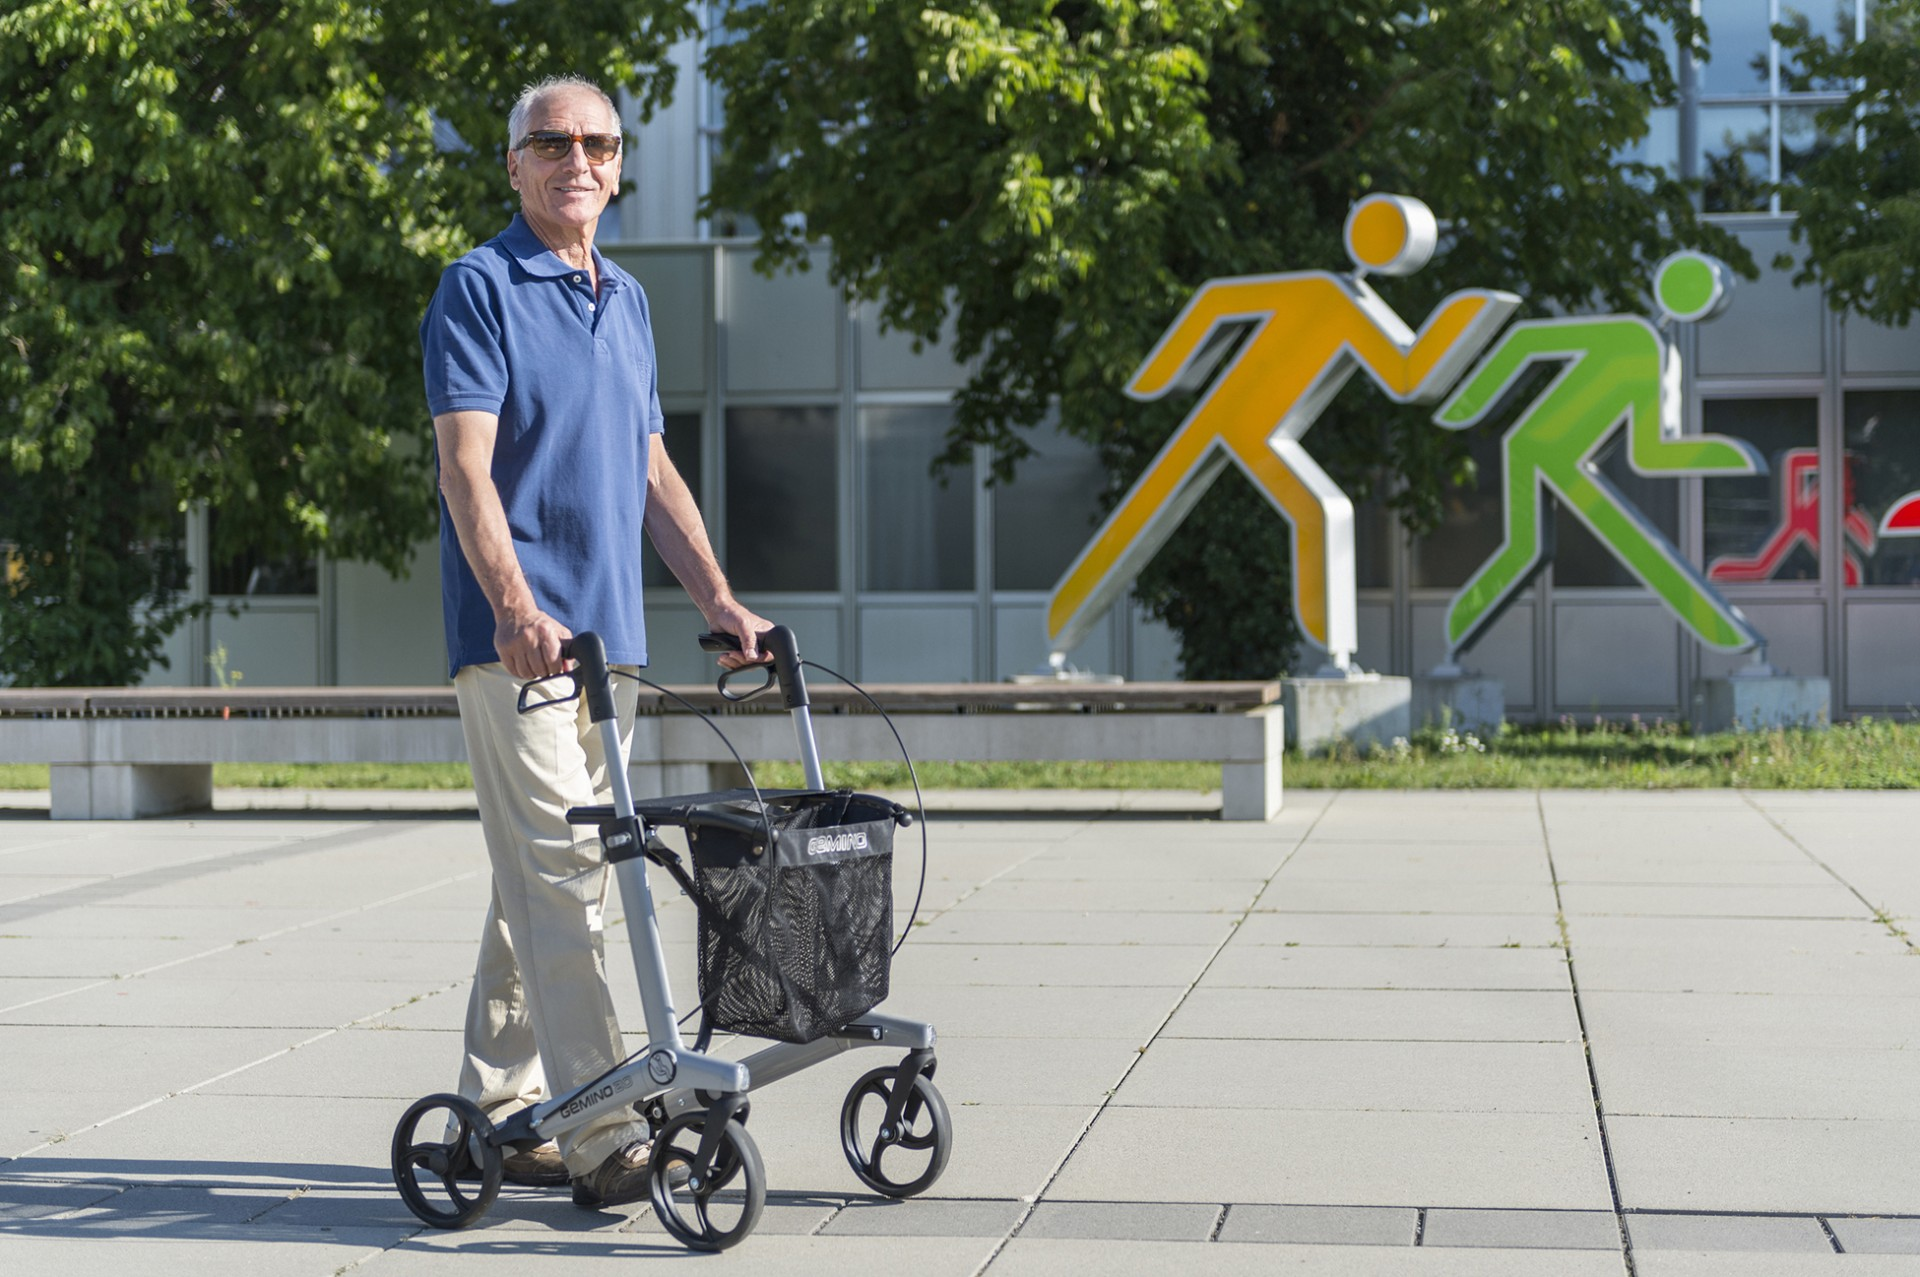 Gemino 20 rollator in zilver van Sunrise Medical